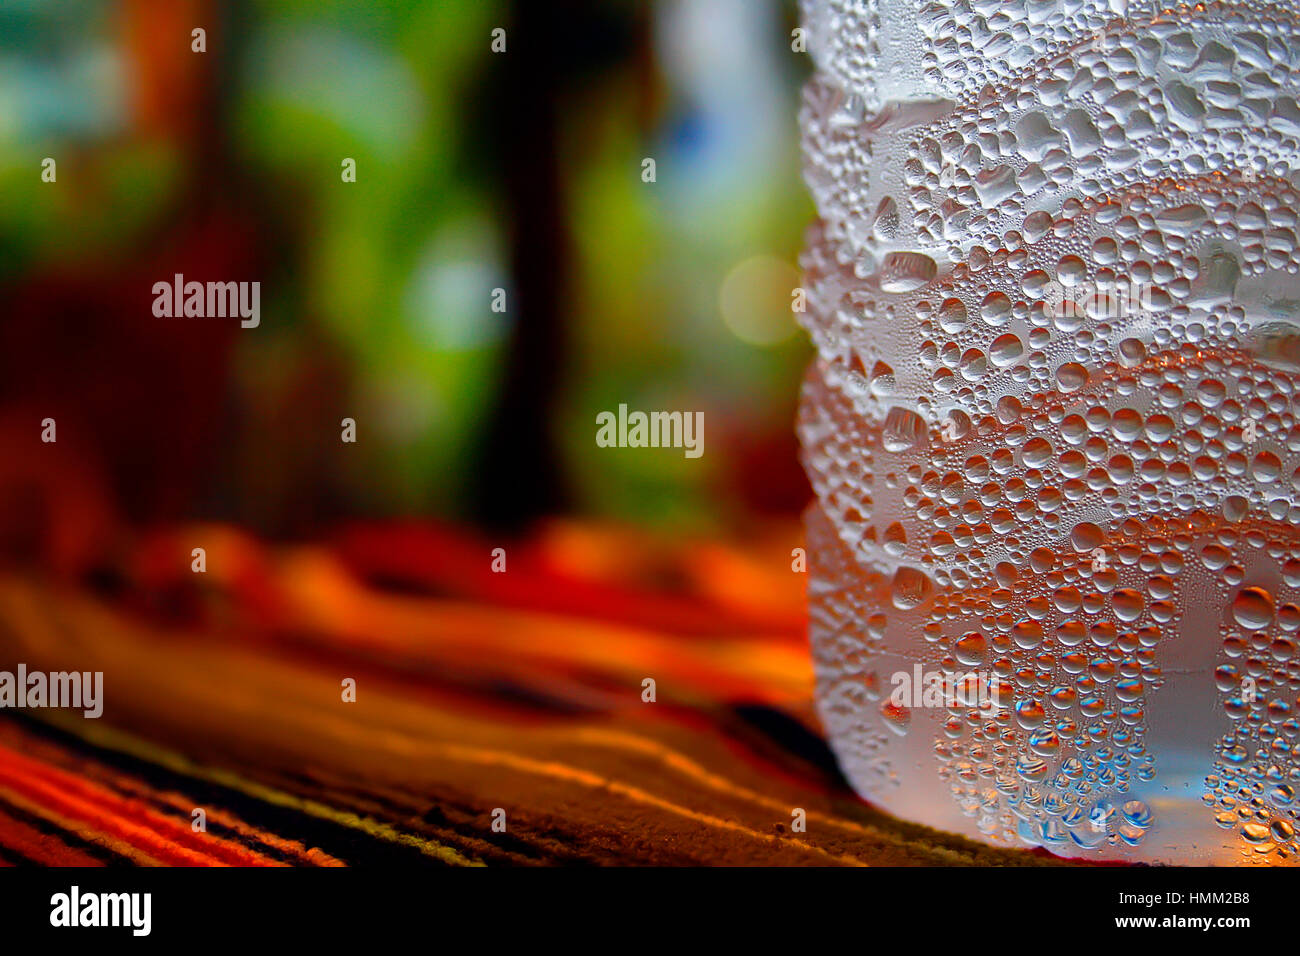 Bottle of water droplets sweat asia background - Stock Image